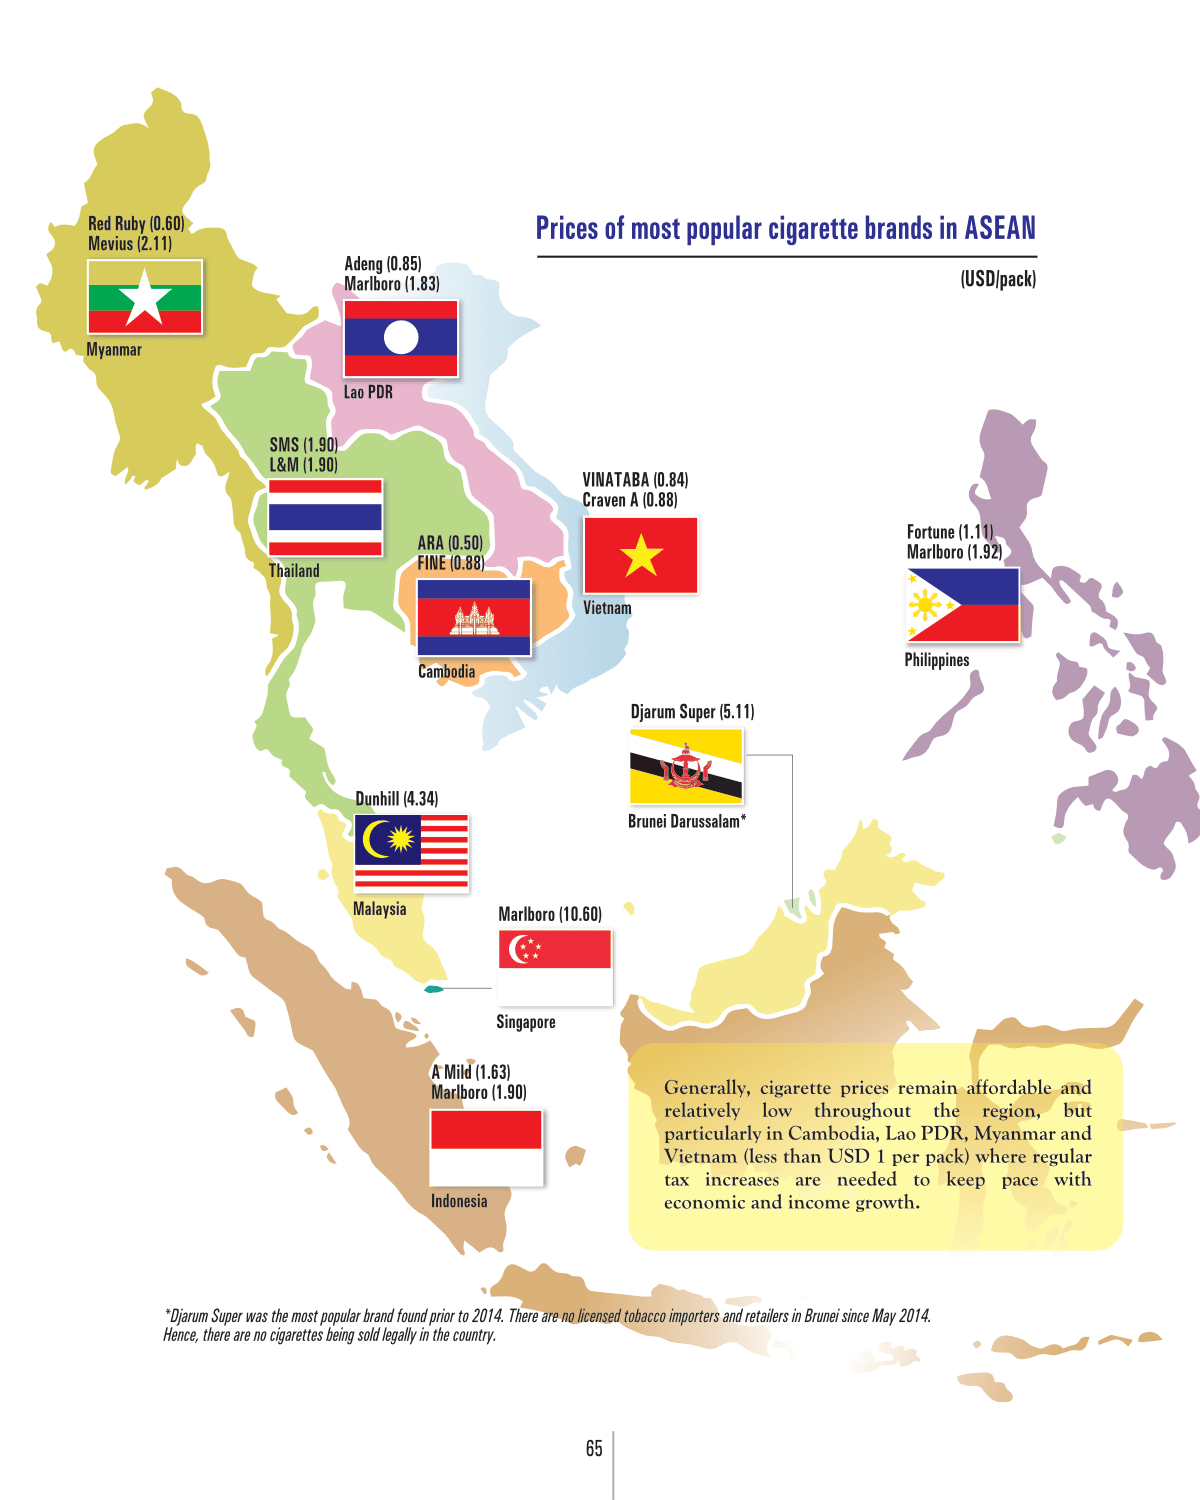 Map: Implementation of FCTC Article 5.3 in ASEAN